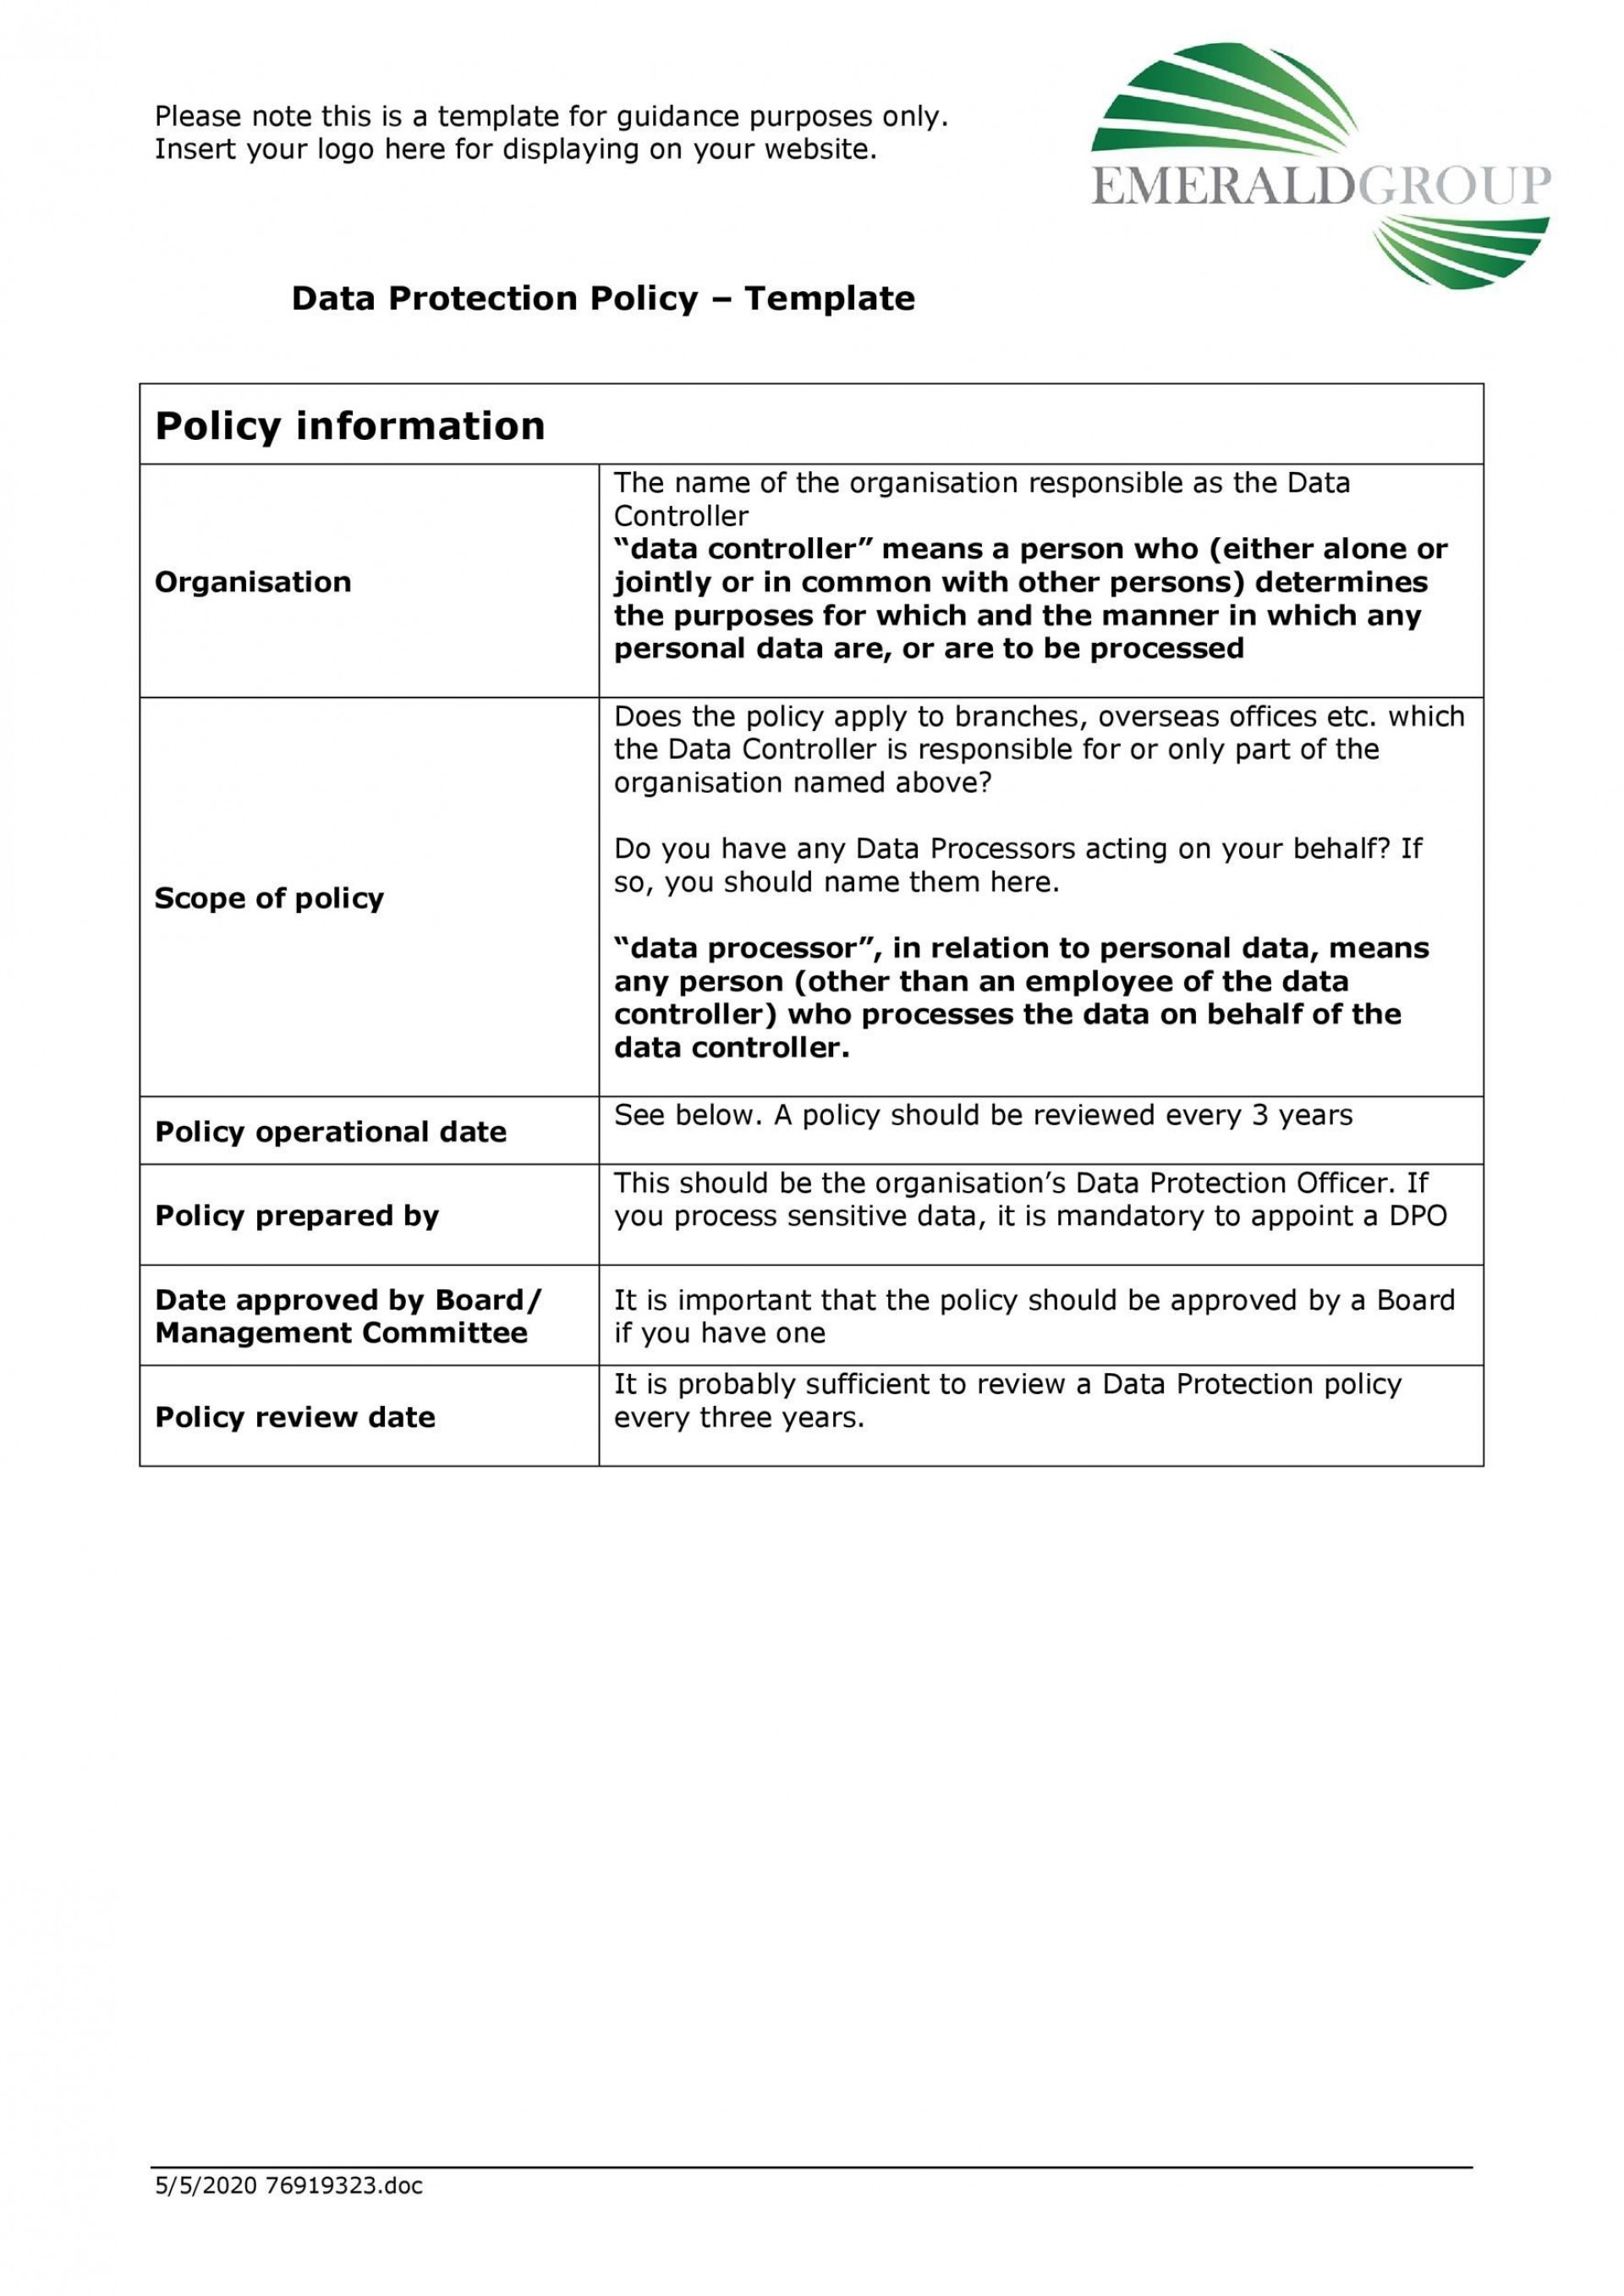 008 Exceptional It Security Policy Template Image  Cyber Nist Australia Uk Free1920